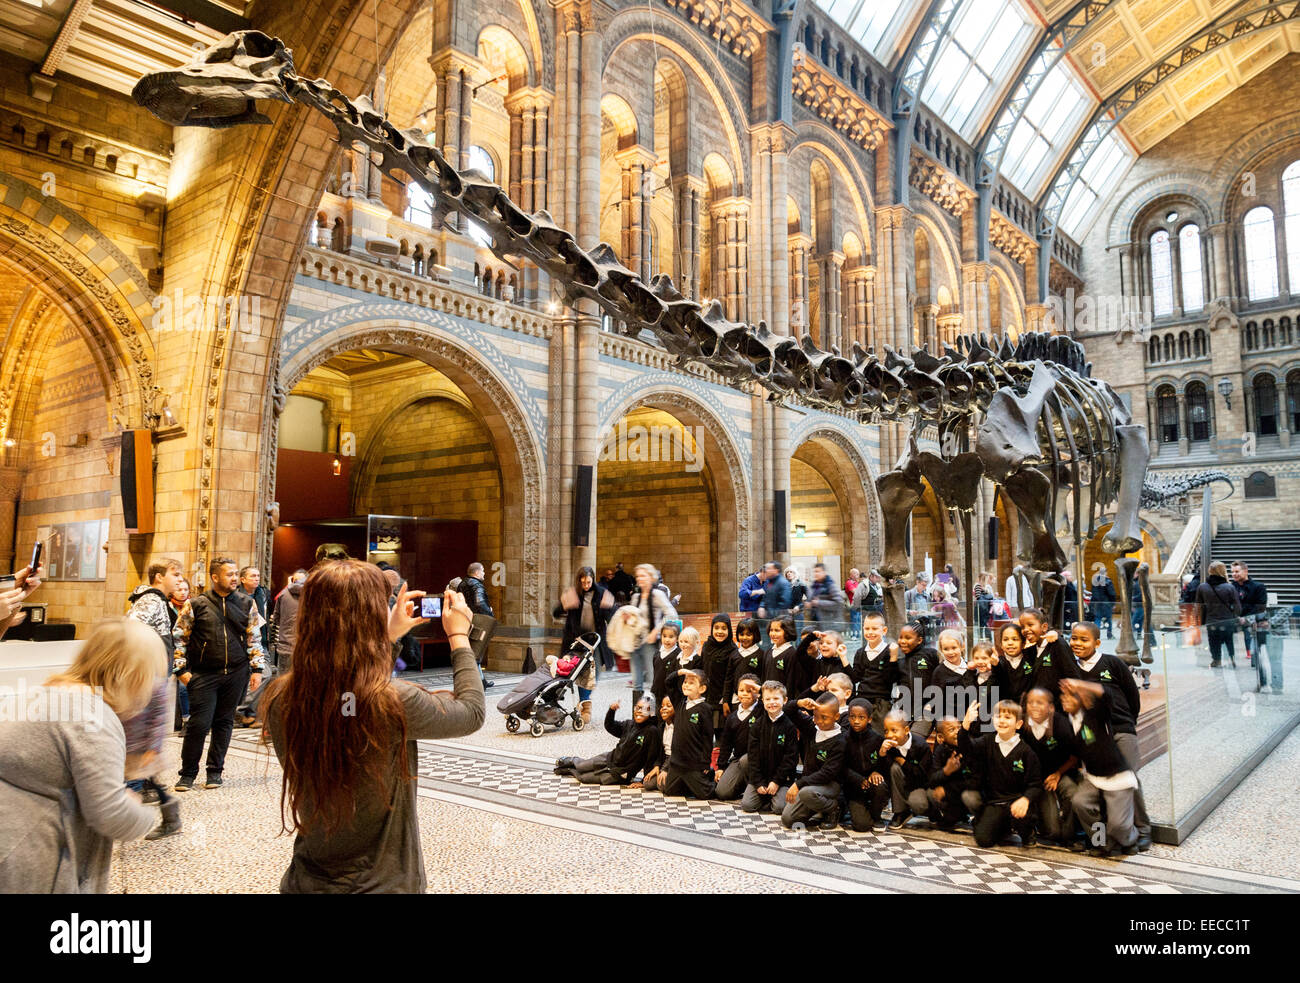 Children on a school trip at the Natural History Museum, London England UK - Stock Image